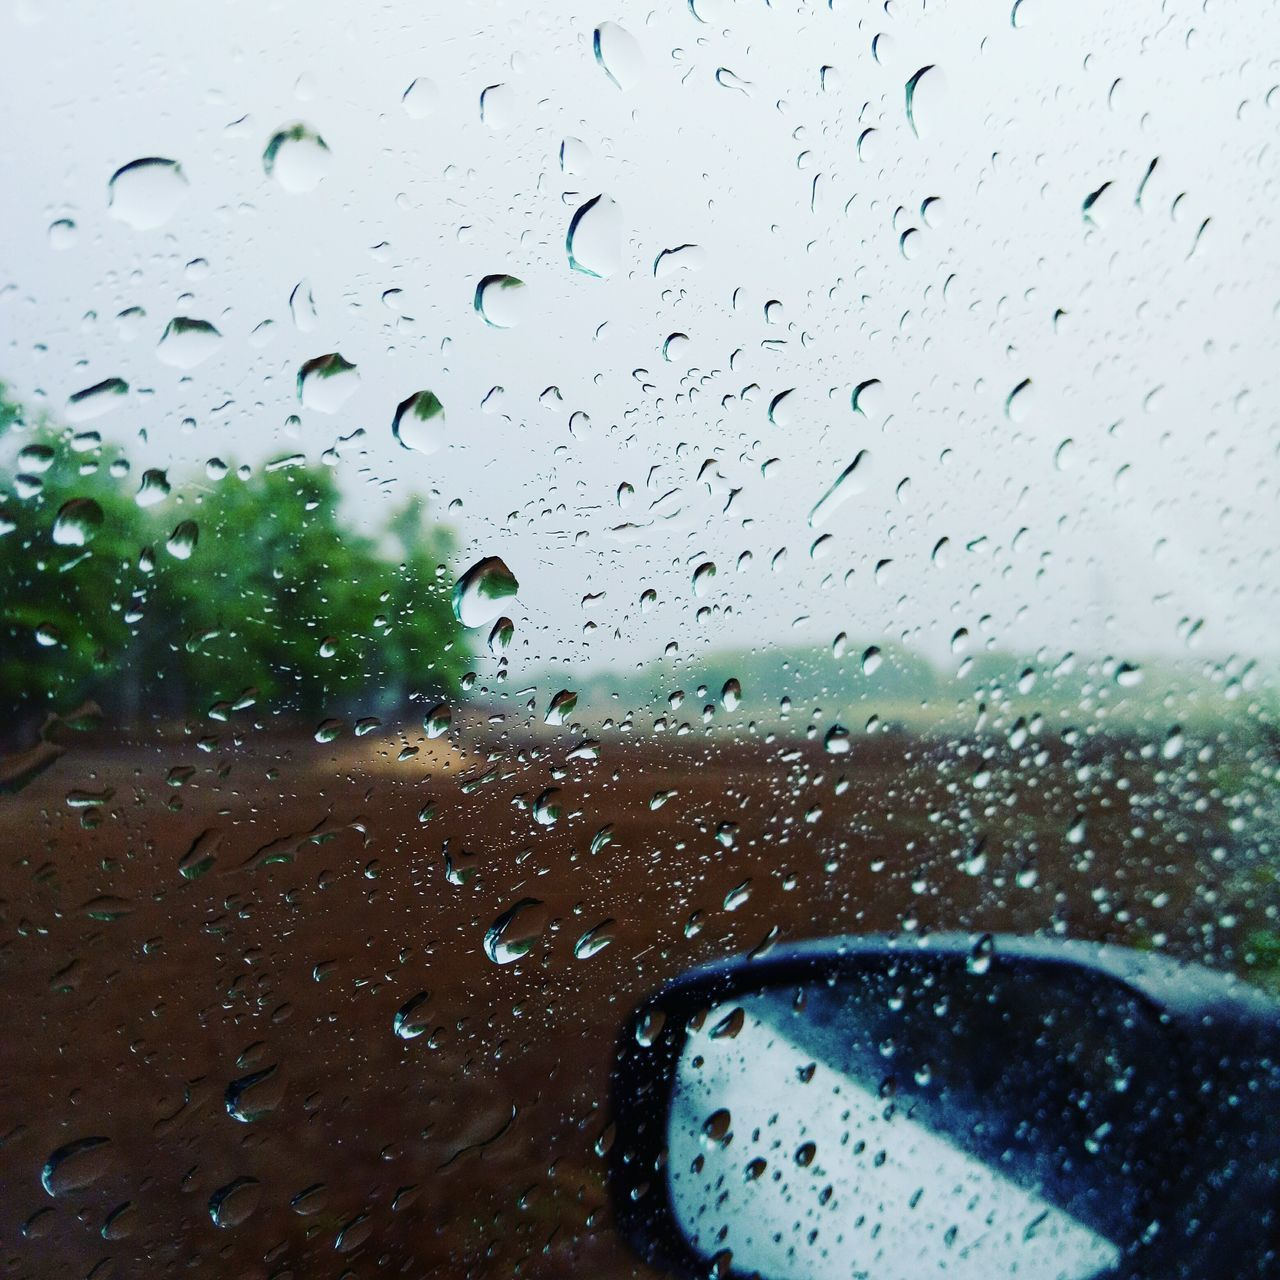 drop, wet, rain, window, glass - material, rainy season, water, raindrop, vehicle interior, weather, car, no people, car interior, land vehicle, windshield, transportation, mode of transport, indoors, sky, day, looking through window, nature, close-up